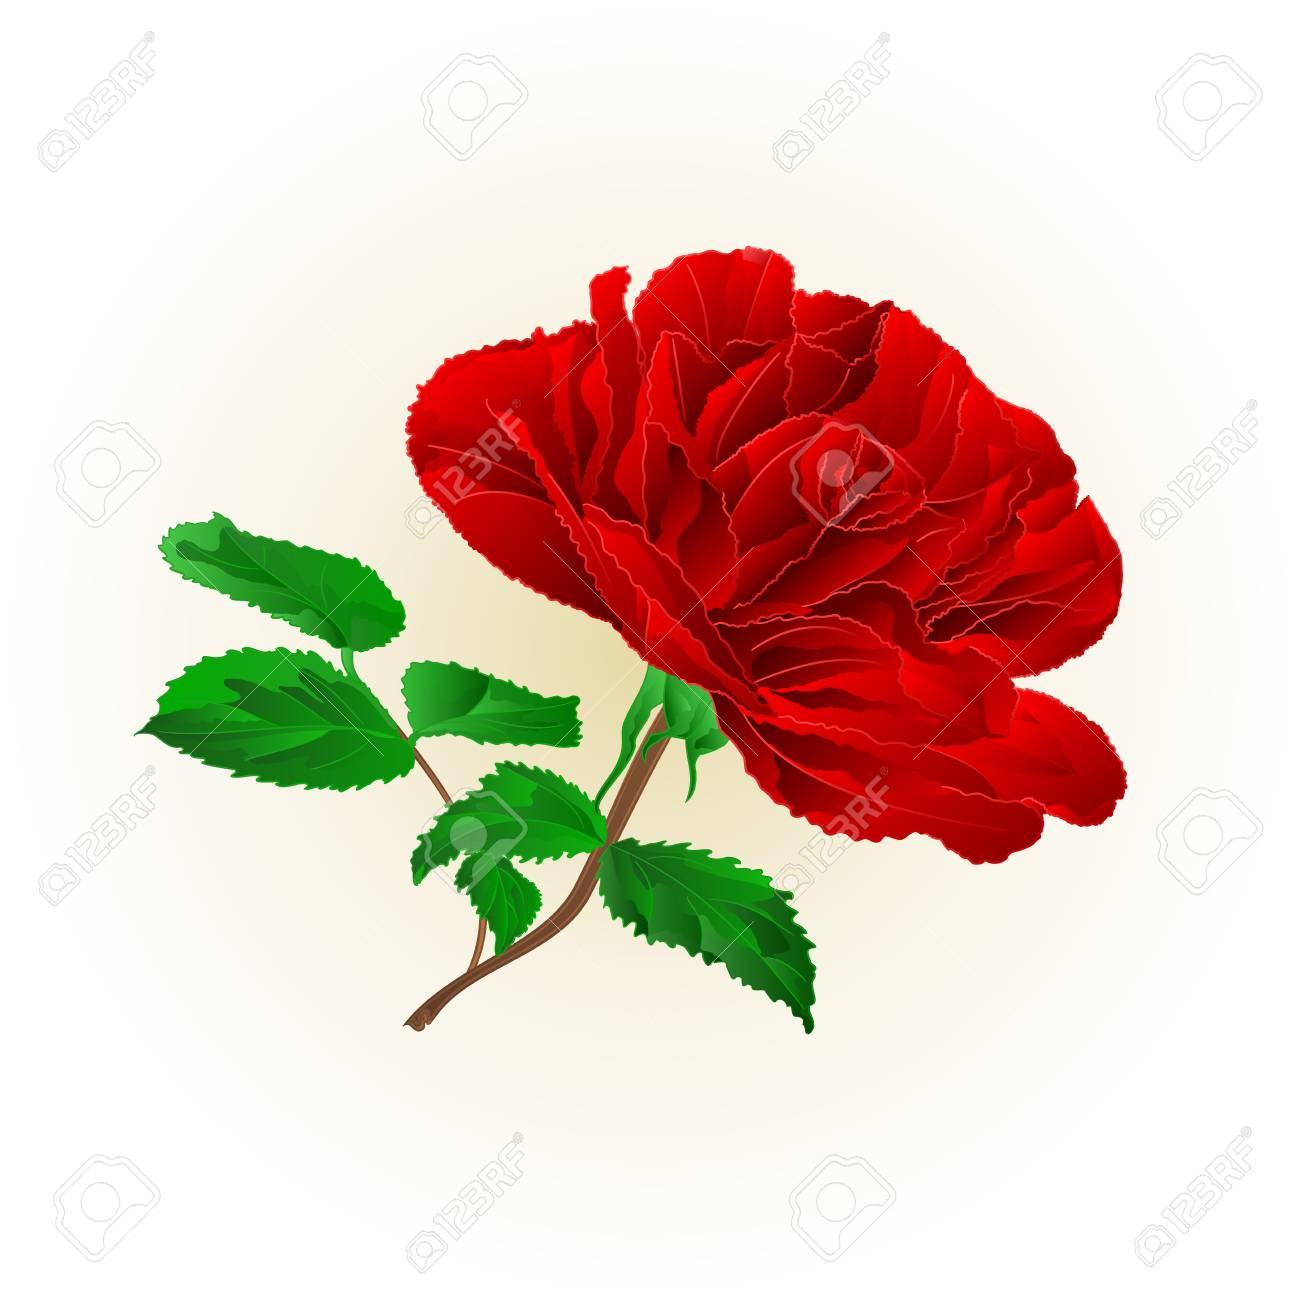 Simple Red Rose Stem With Leaves On White Background Vector Illustration Royalty Free Cliparts Vectors And Stock Illustration Image 94824134